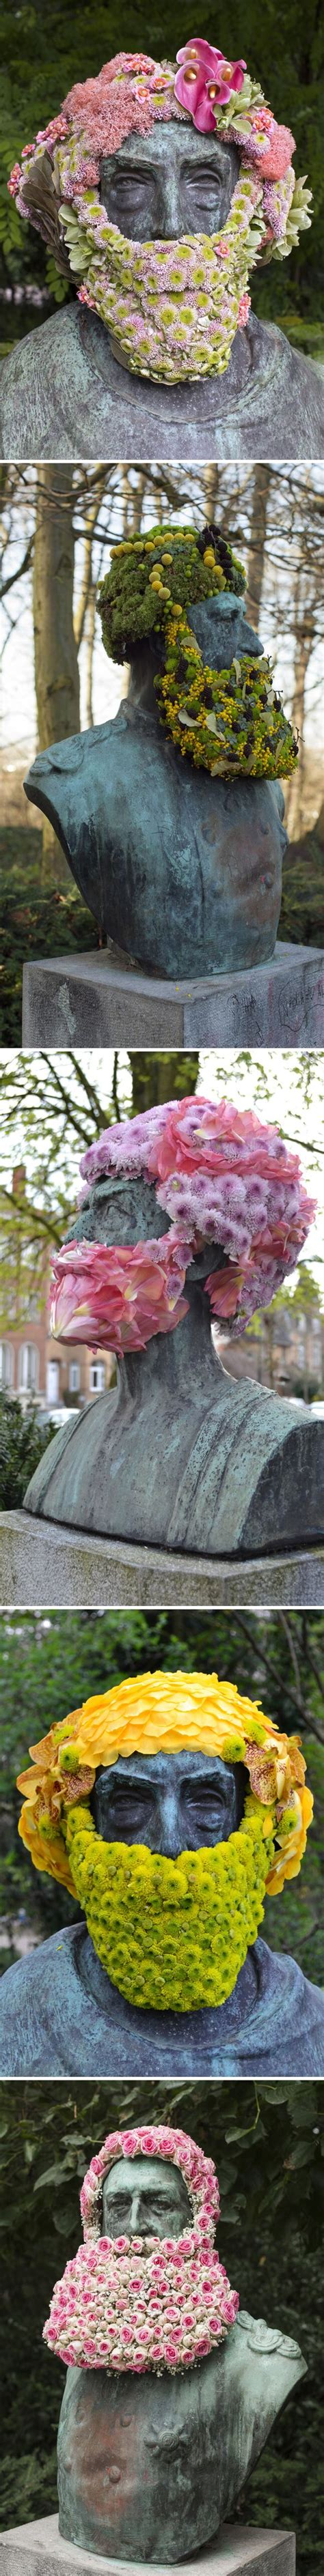 geoffroy mottart 17 best ideas about flower installation on pinterest art